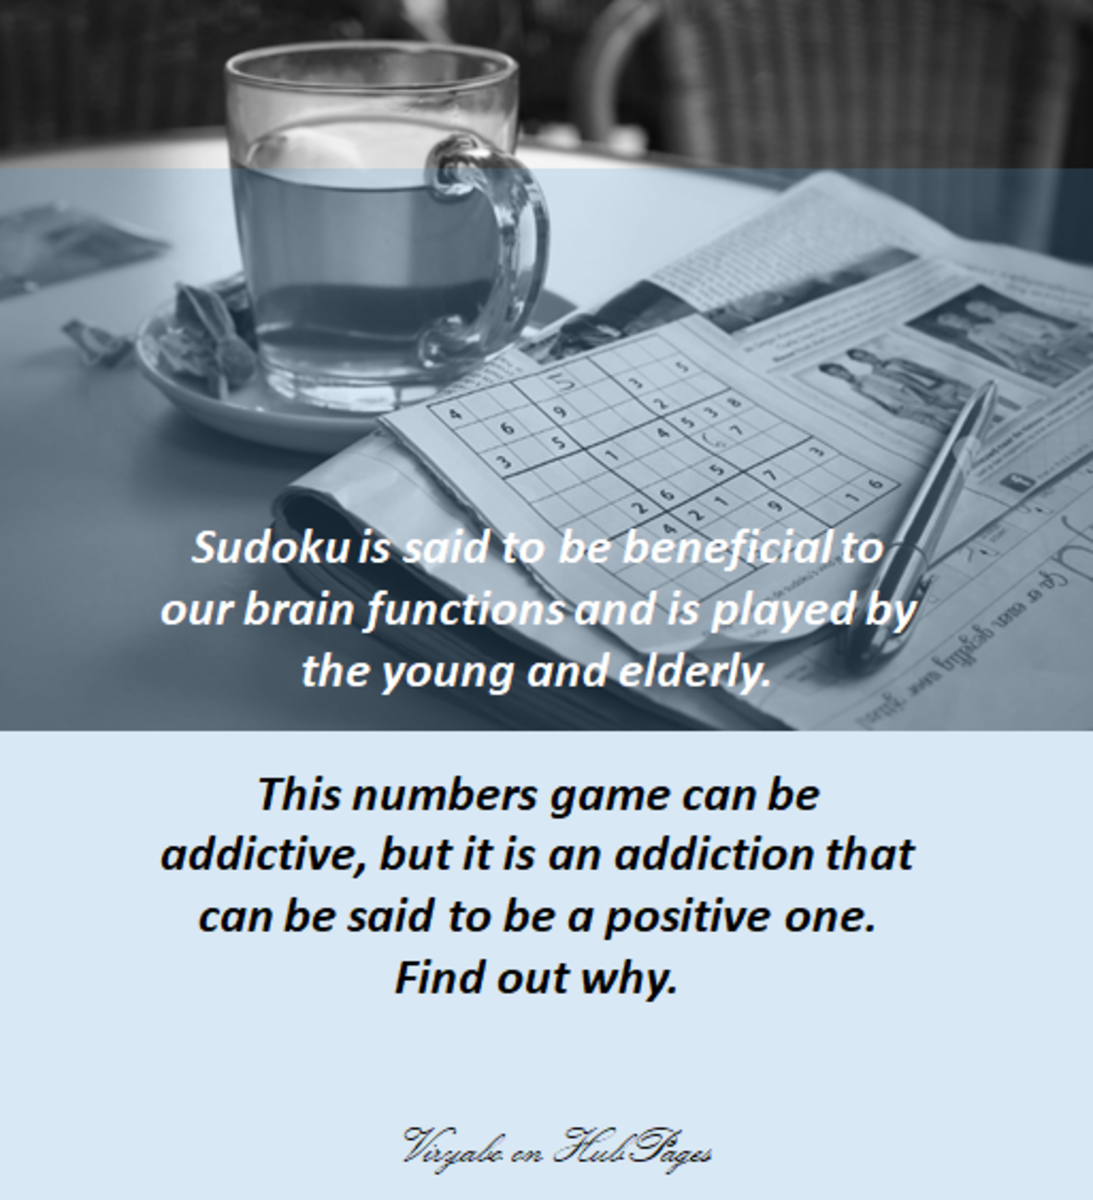 Sudoku – Amazing Benefits of Playing Numbers Games